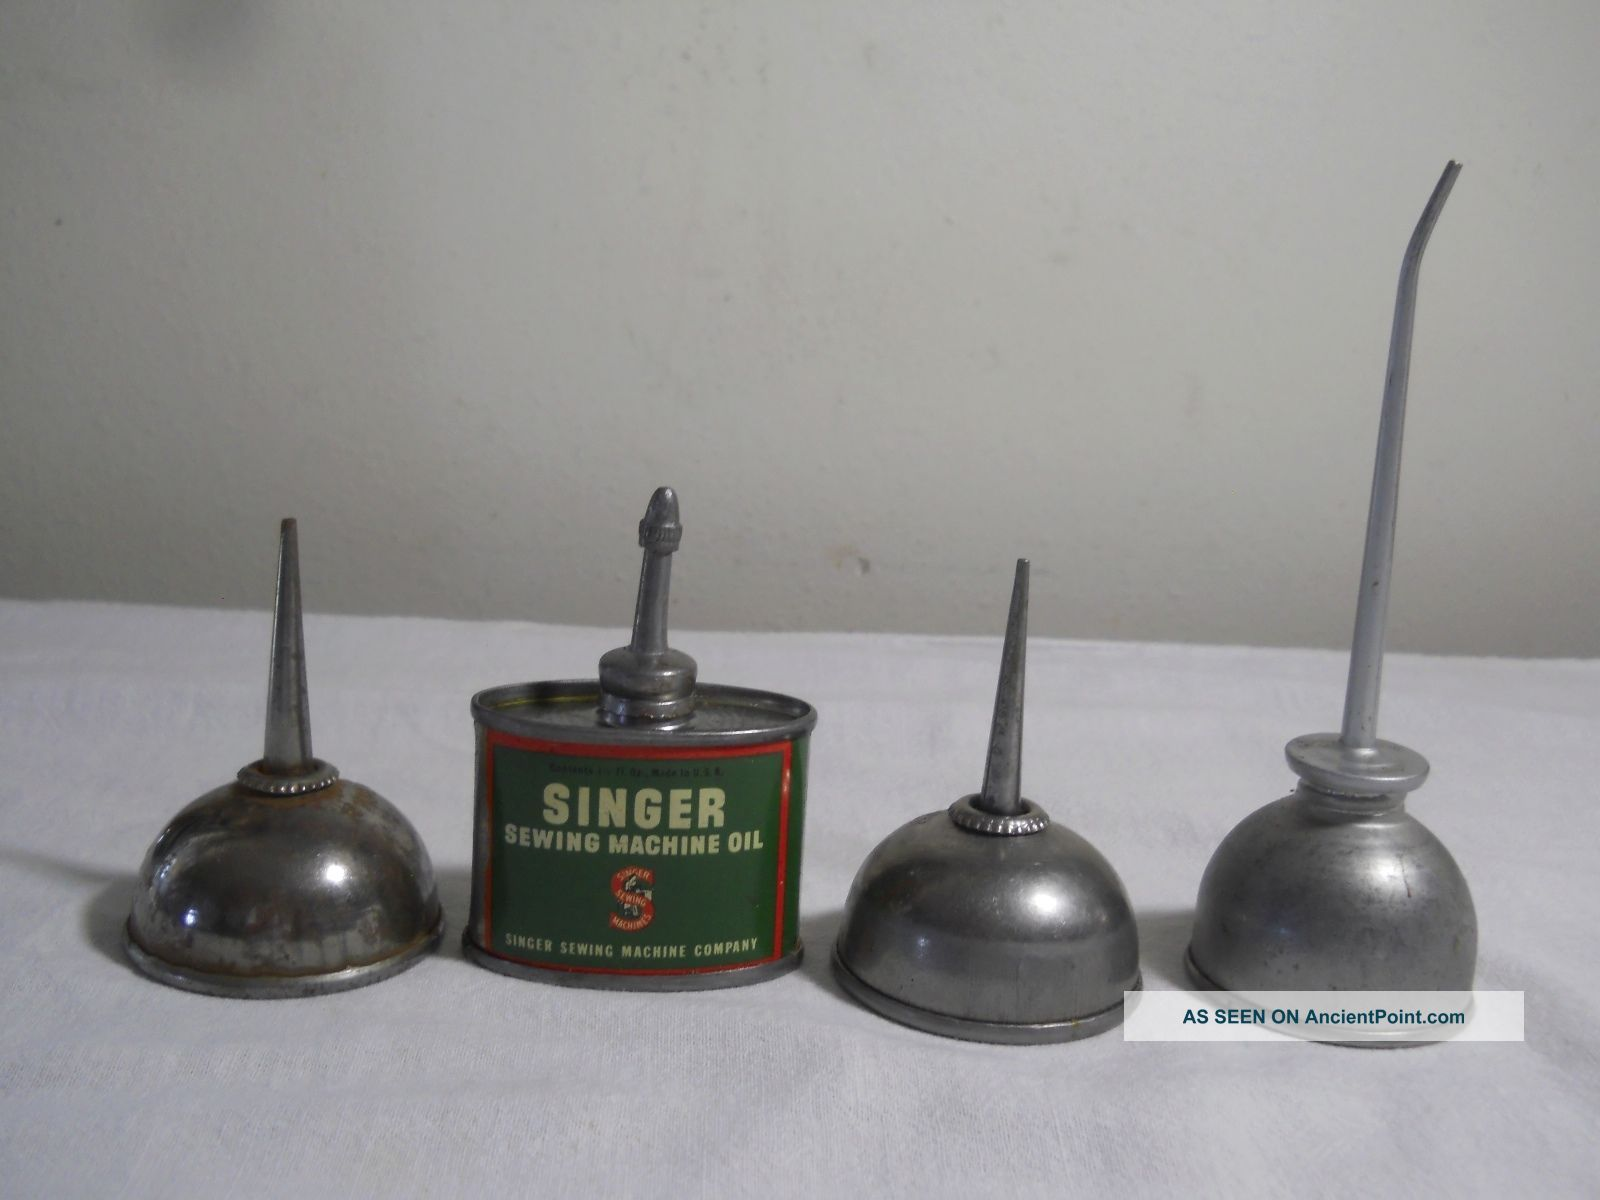 3 Antique Singer Sewing Machine Squirt Oil Cans And 1 Other Small Squirt Can Other Antique Sewing photo